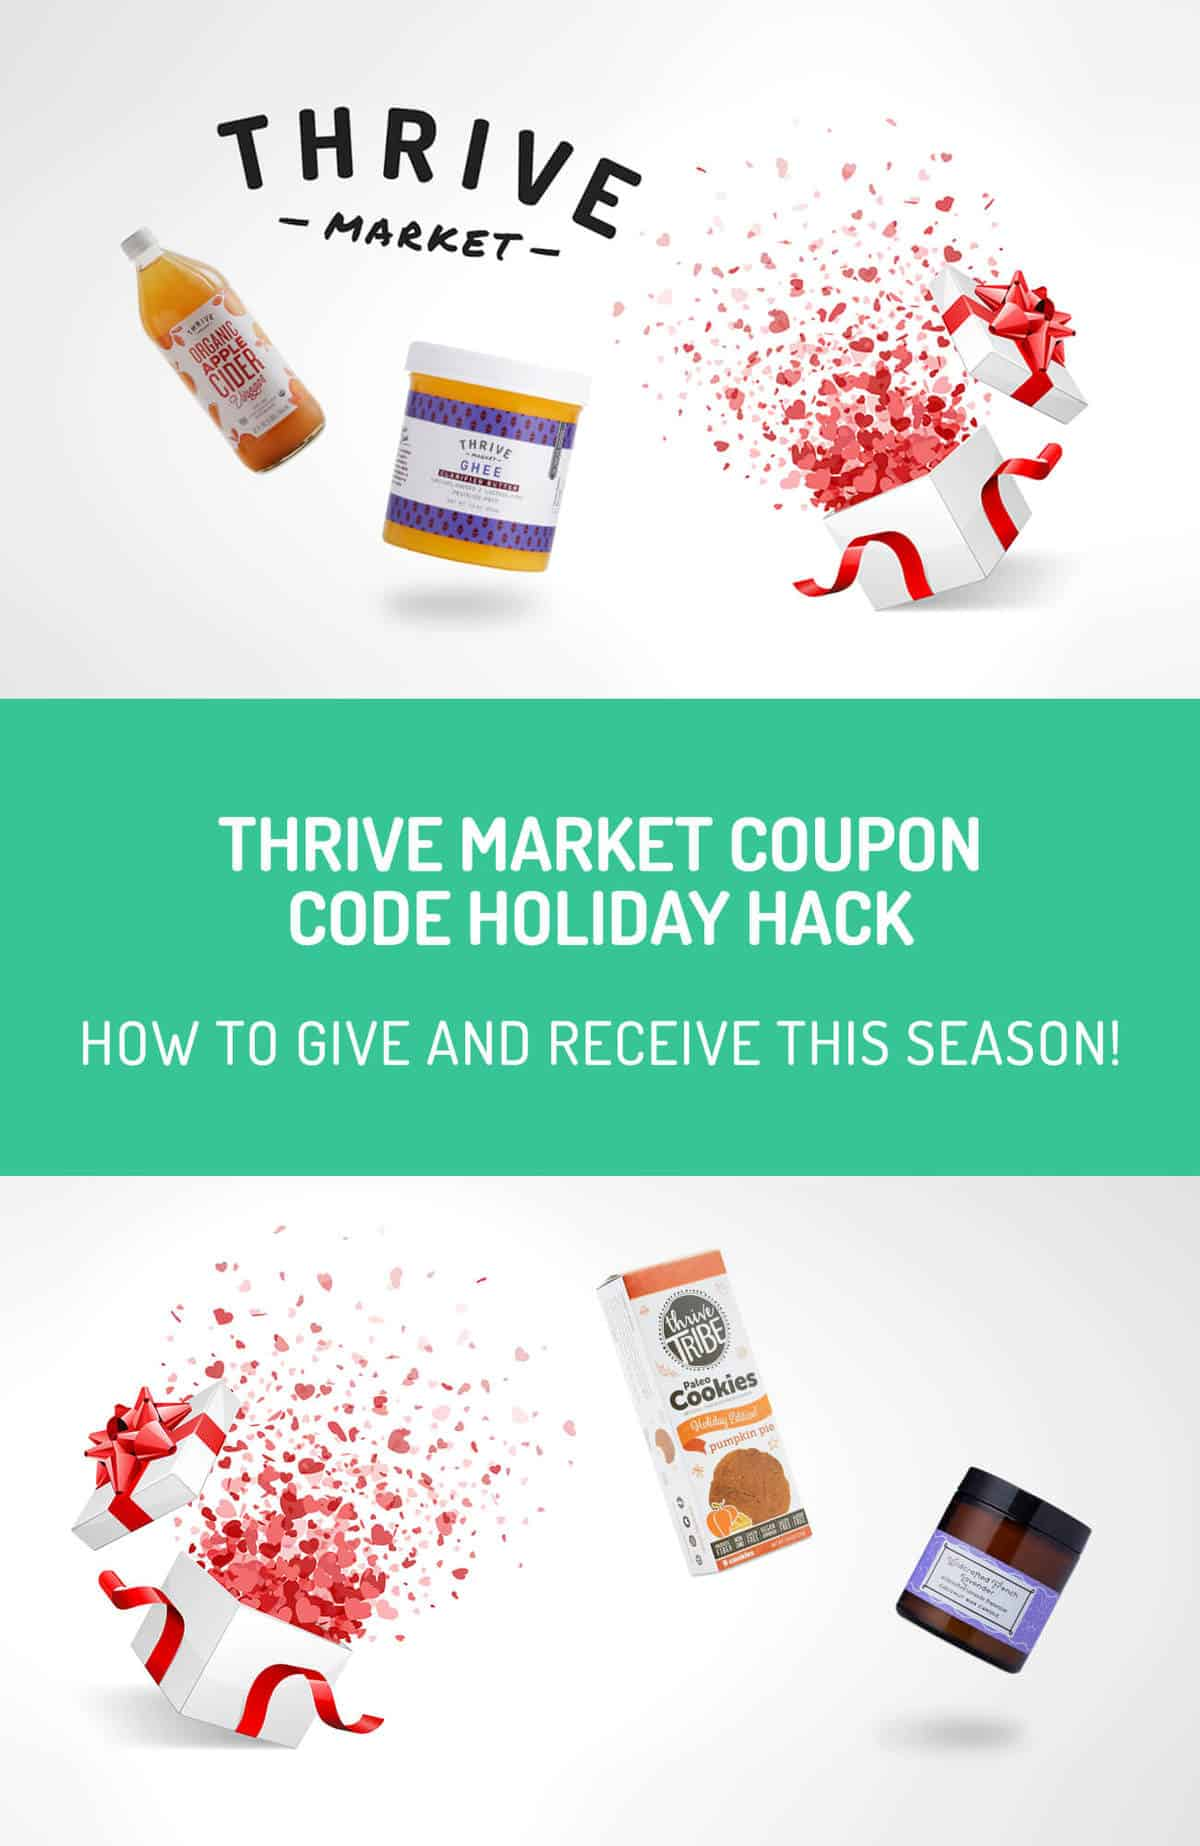 Use this holiday hack for Thrive Market to get a great discount on your holiday shopping and keep a sweet membership deal all for yourself!